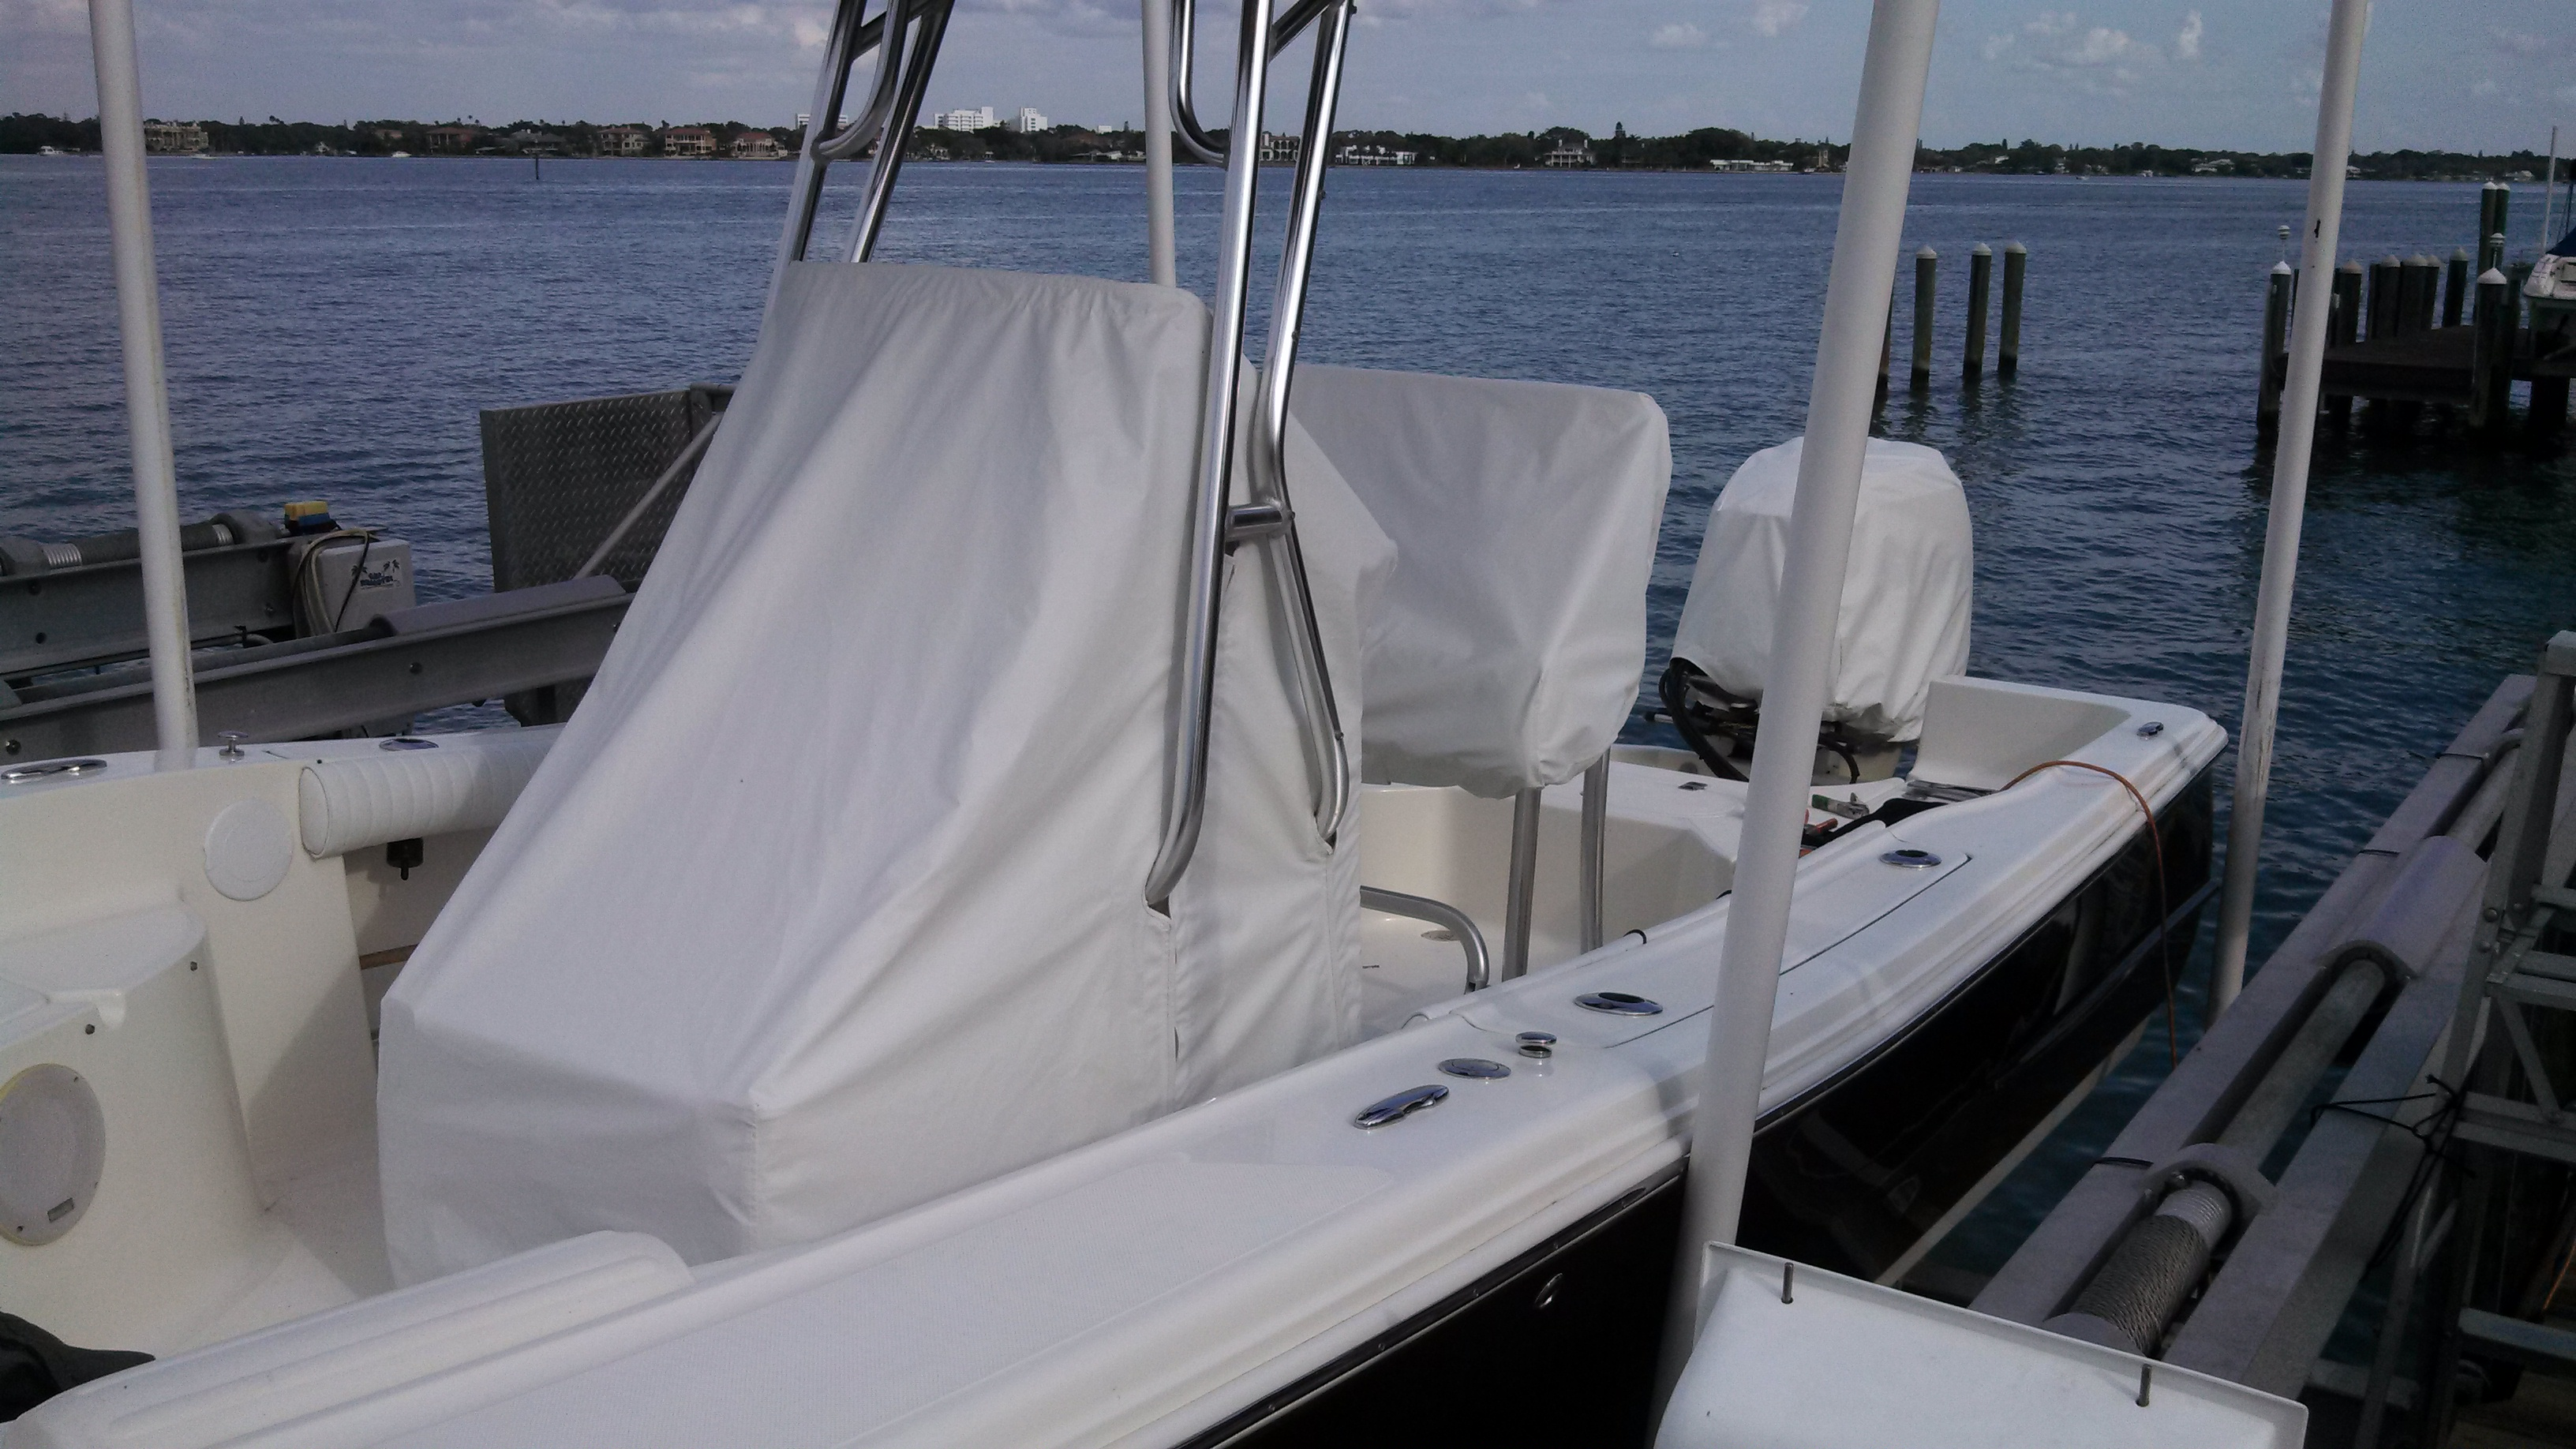 Pictures of Center Console Boat Covers